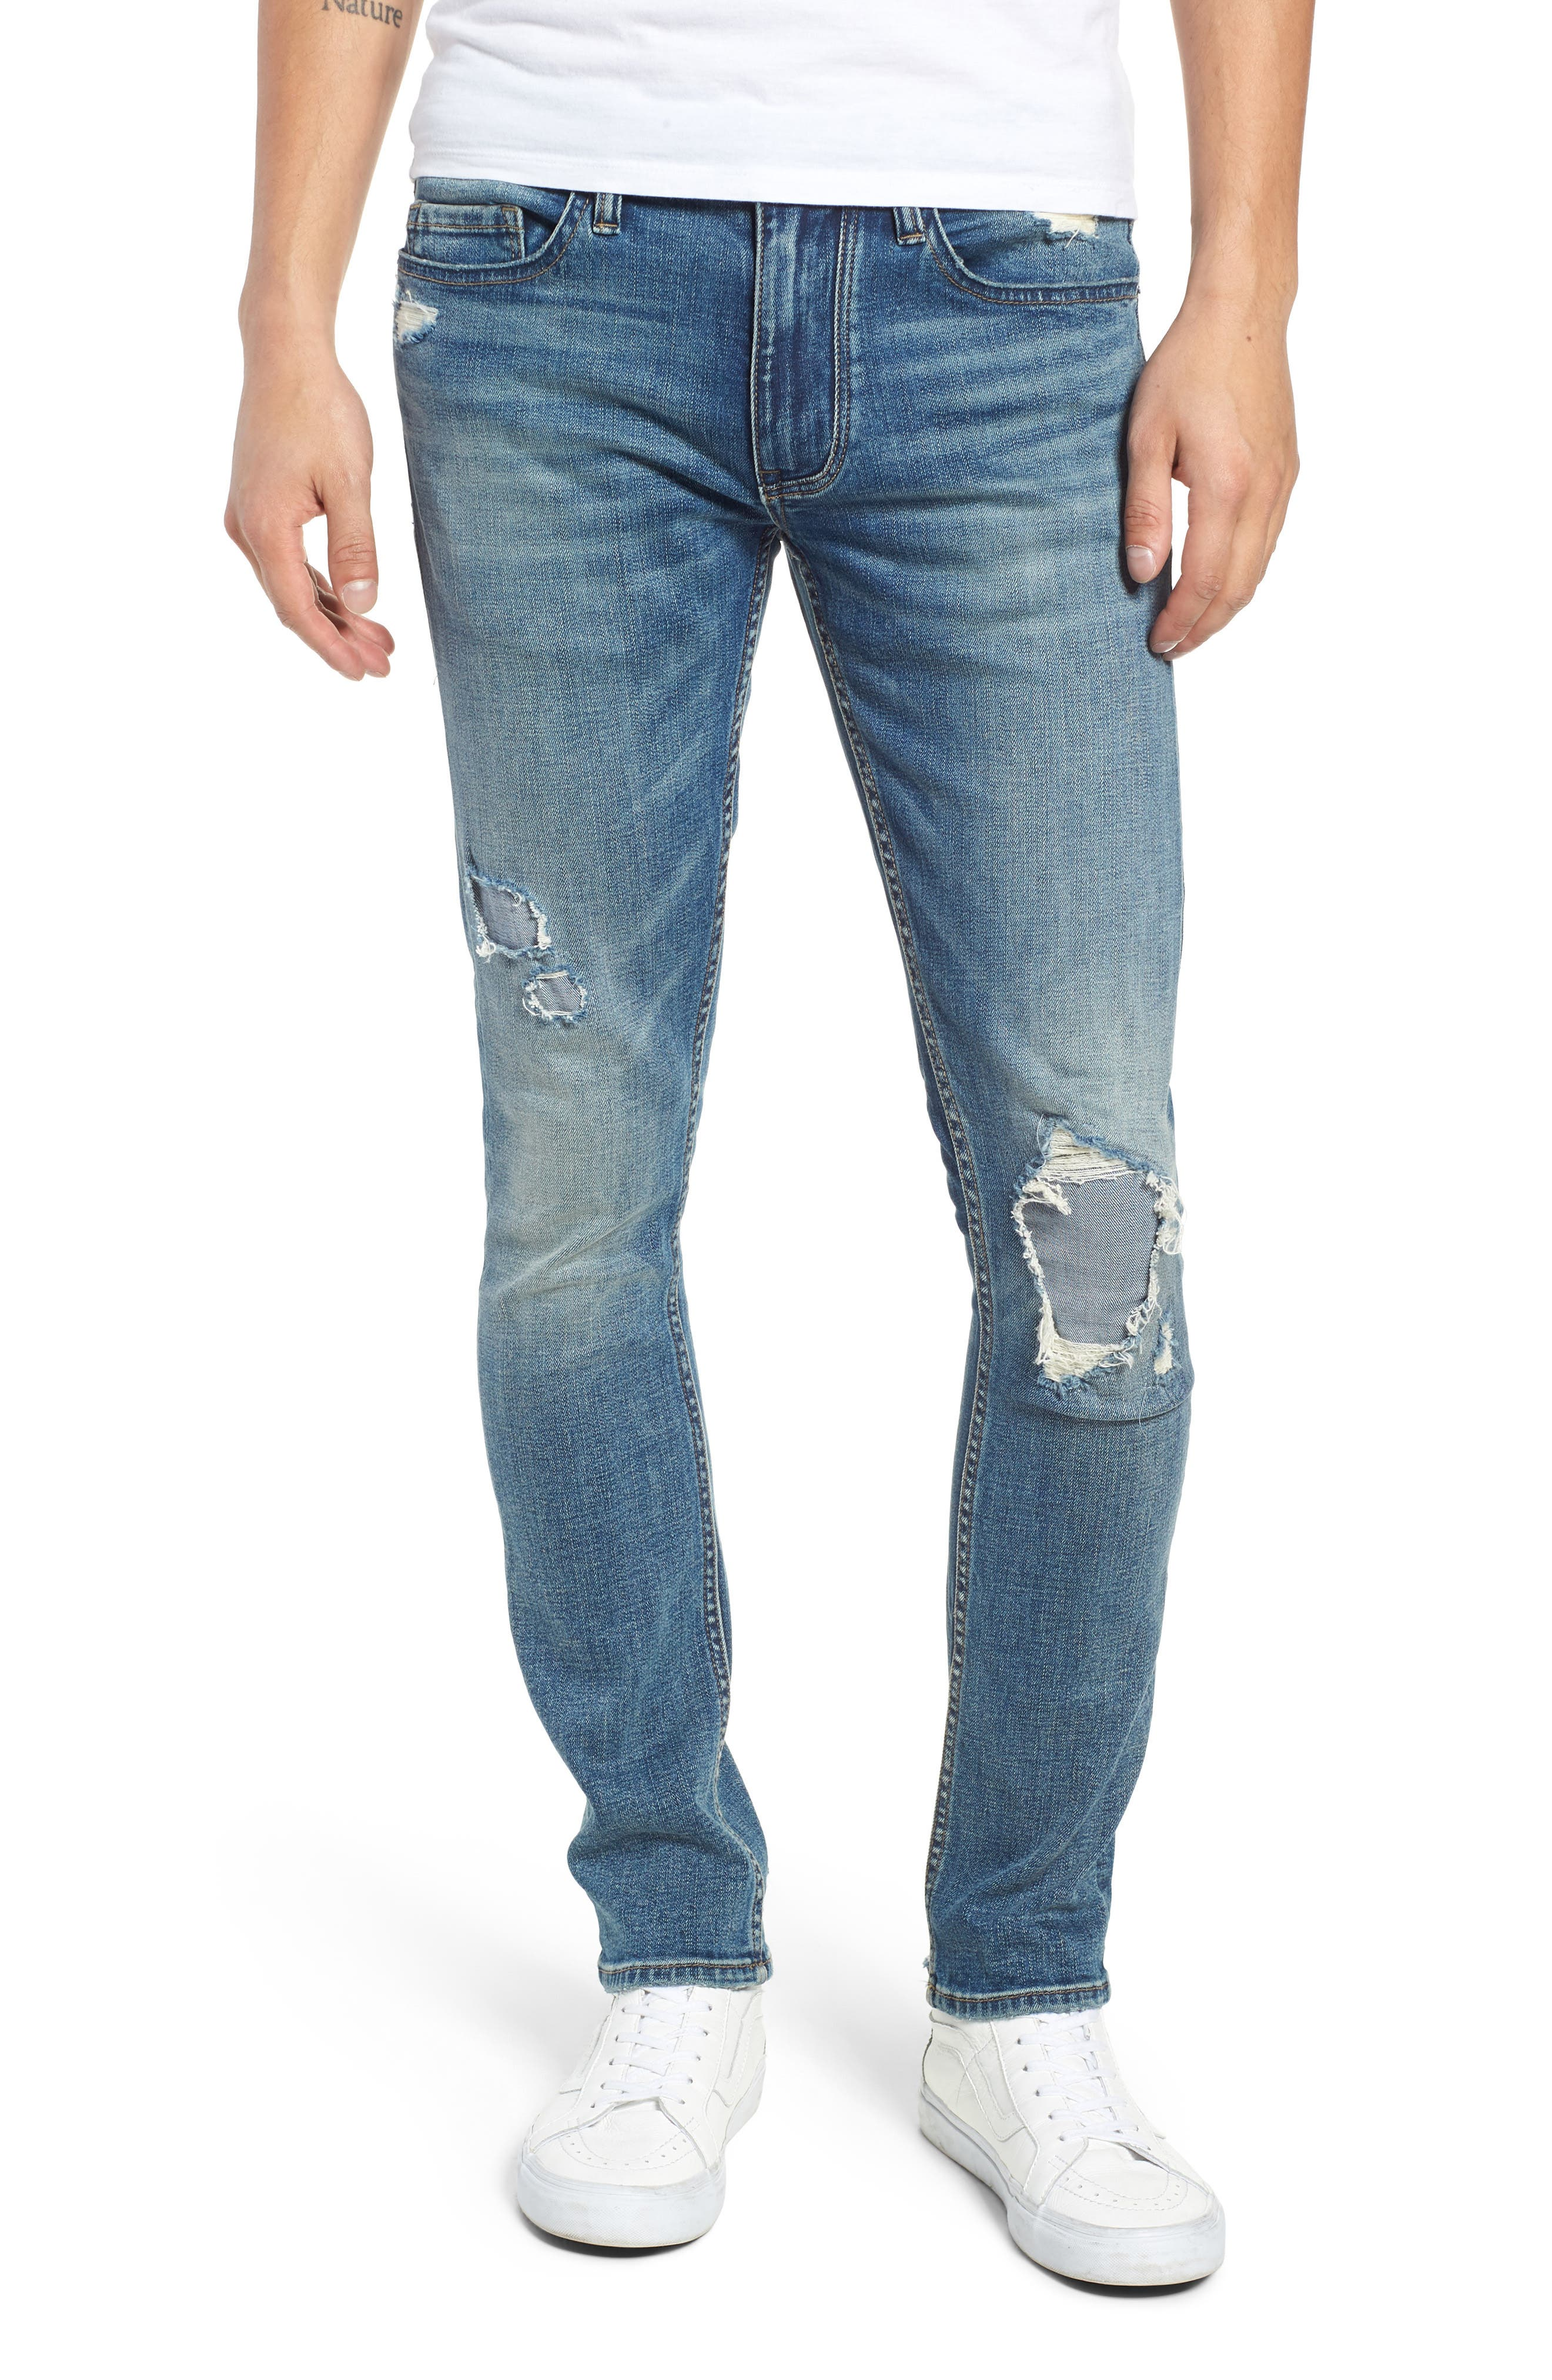 Horatio Skinny Fit Jeans,                         Main,                         color, SUDDEN PROFIT